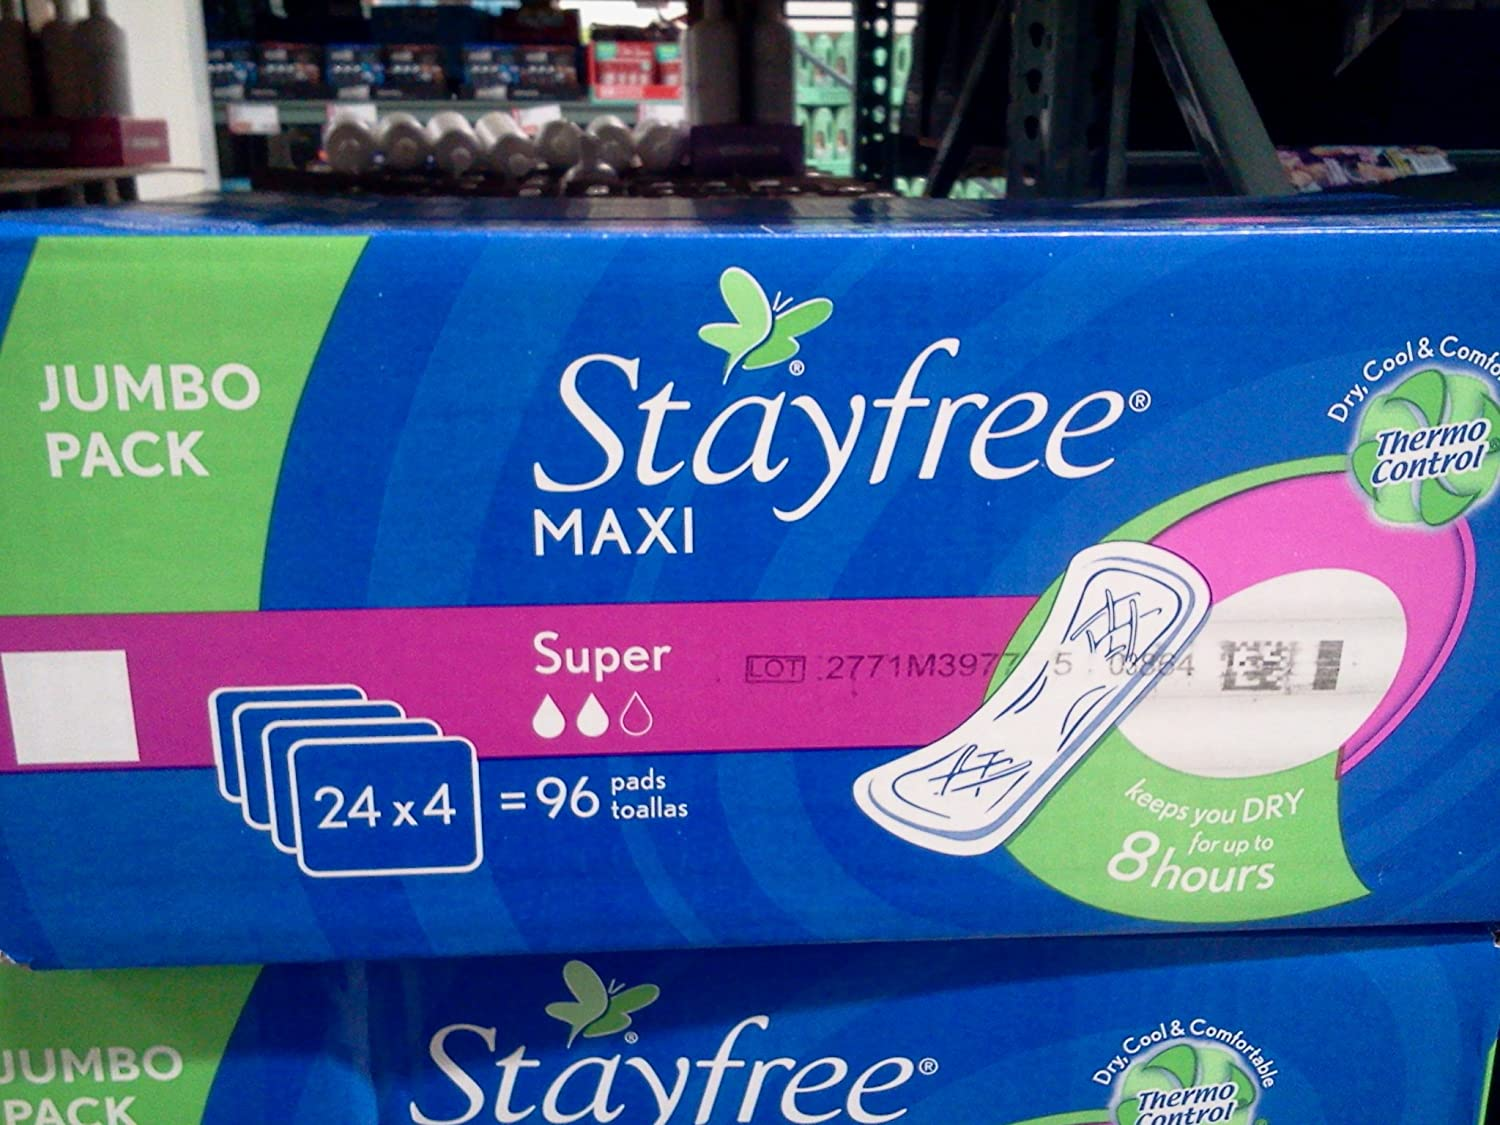 Amazon.com: Stayfree Maxi Super 96 Pads Jumbo Pack: Health & Personal Care